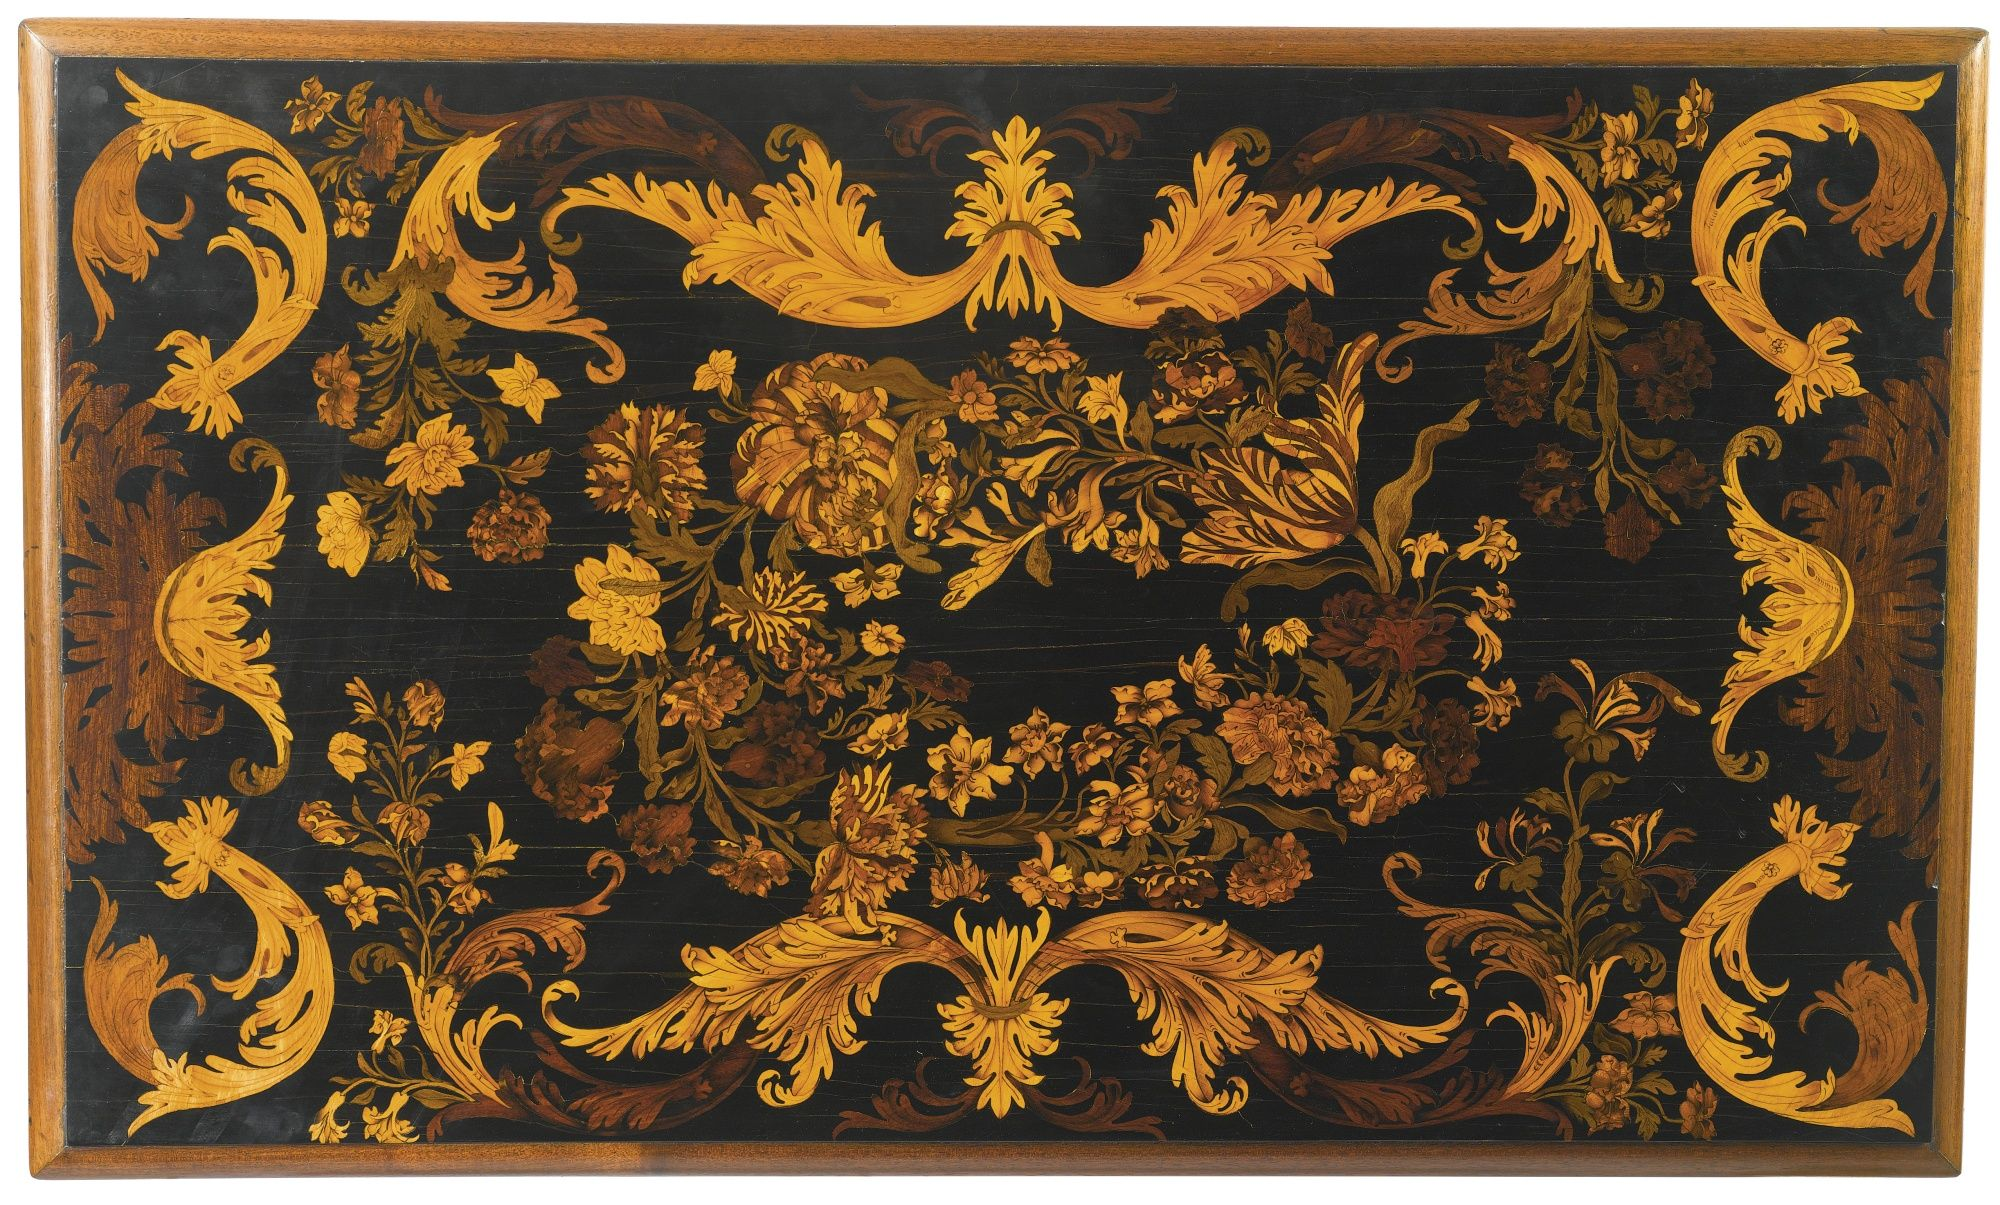 A LOUIS XIV PARCEL-GILT EBONY, KINGWOOD, FRUITWOOD AND MARQUETRY BUREAU BRISÉ, IN THE MANNER OF PIERRE GOLE THE LEGS LATER